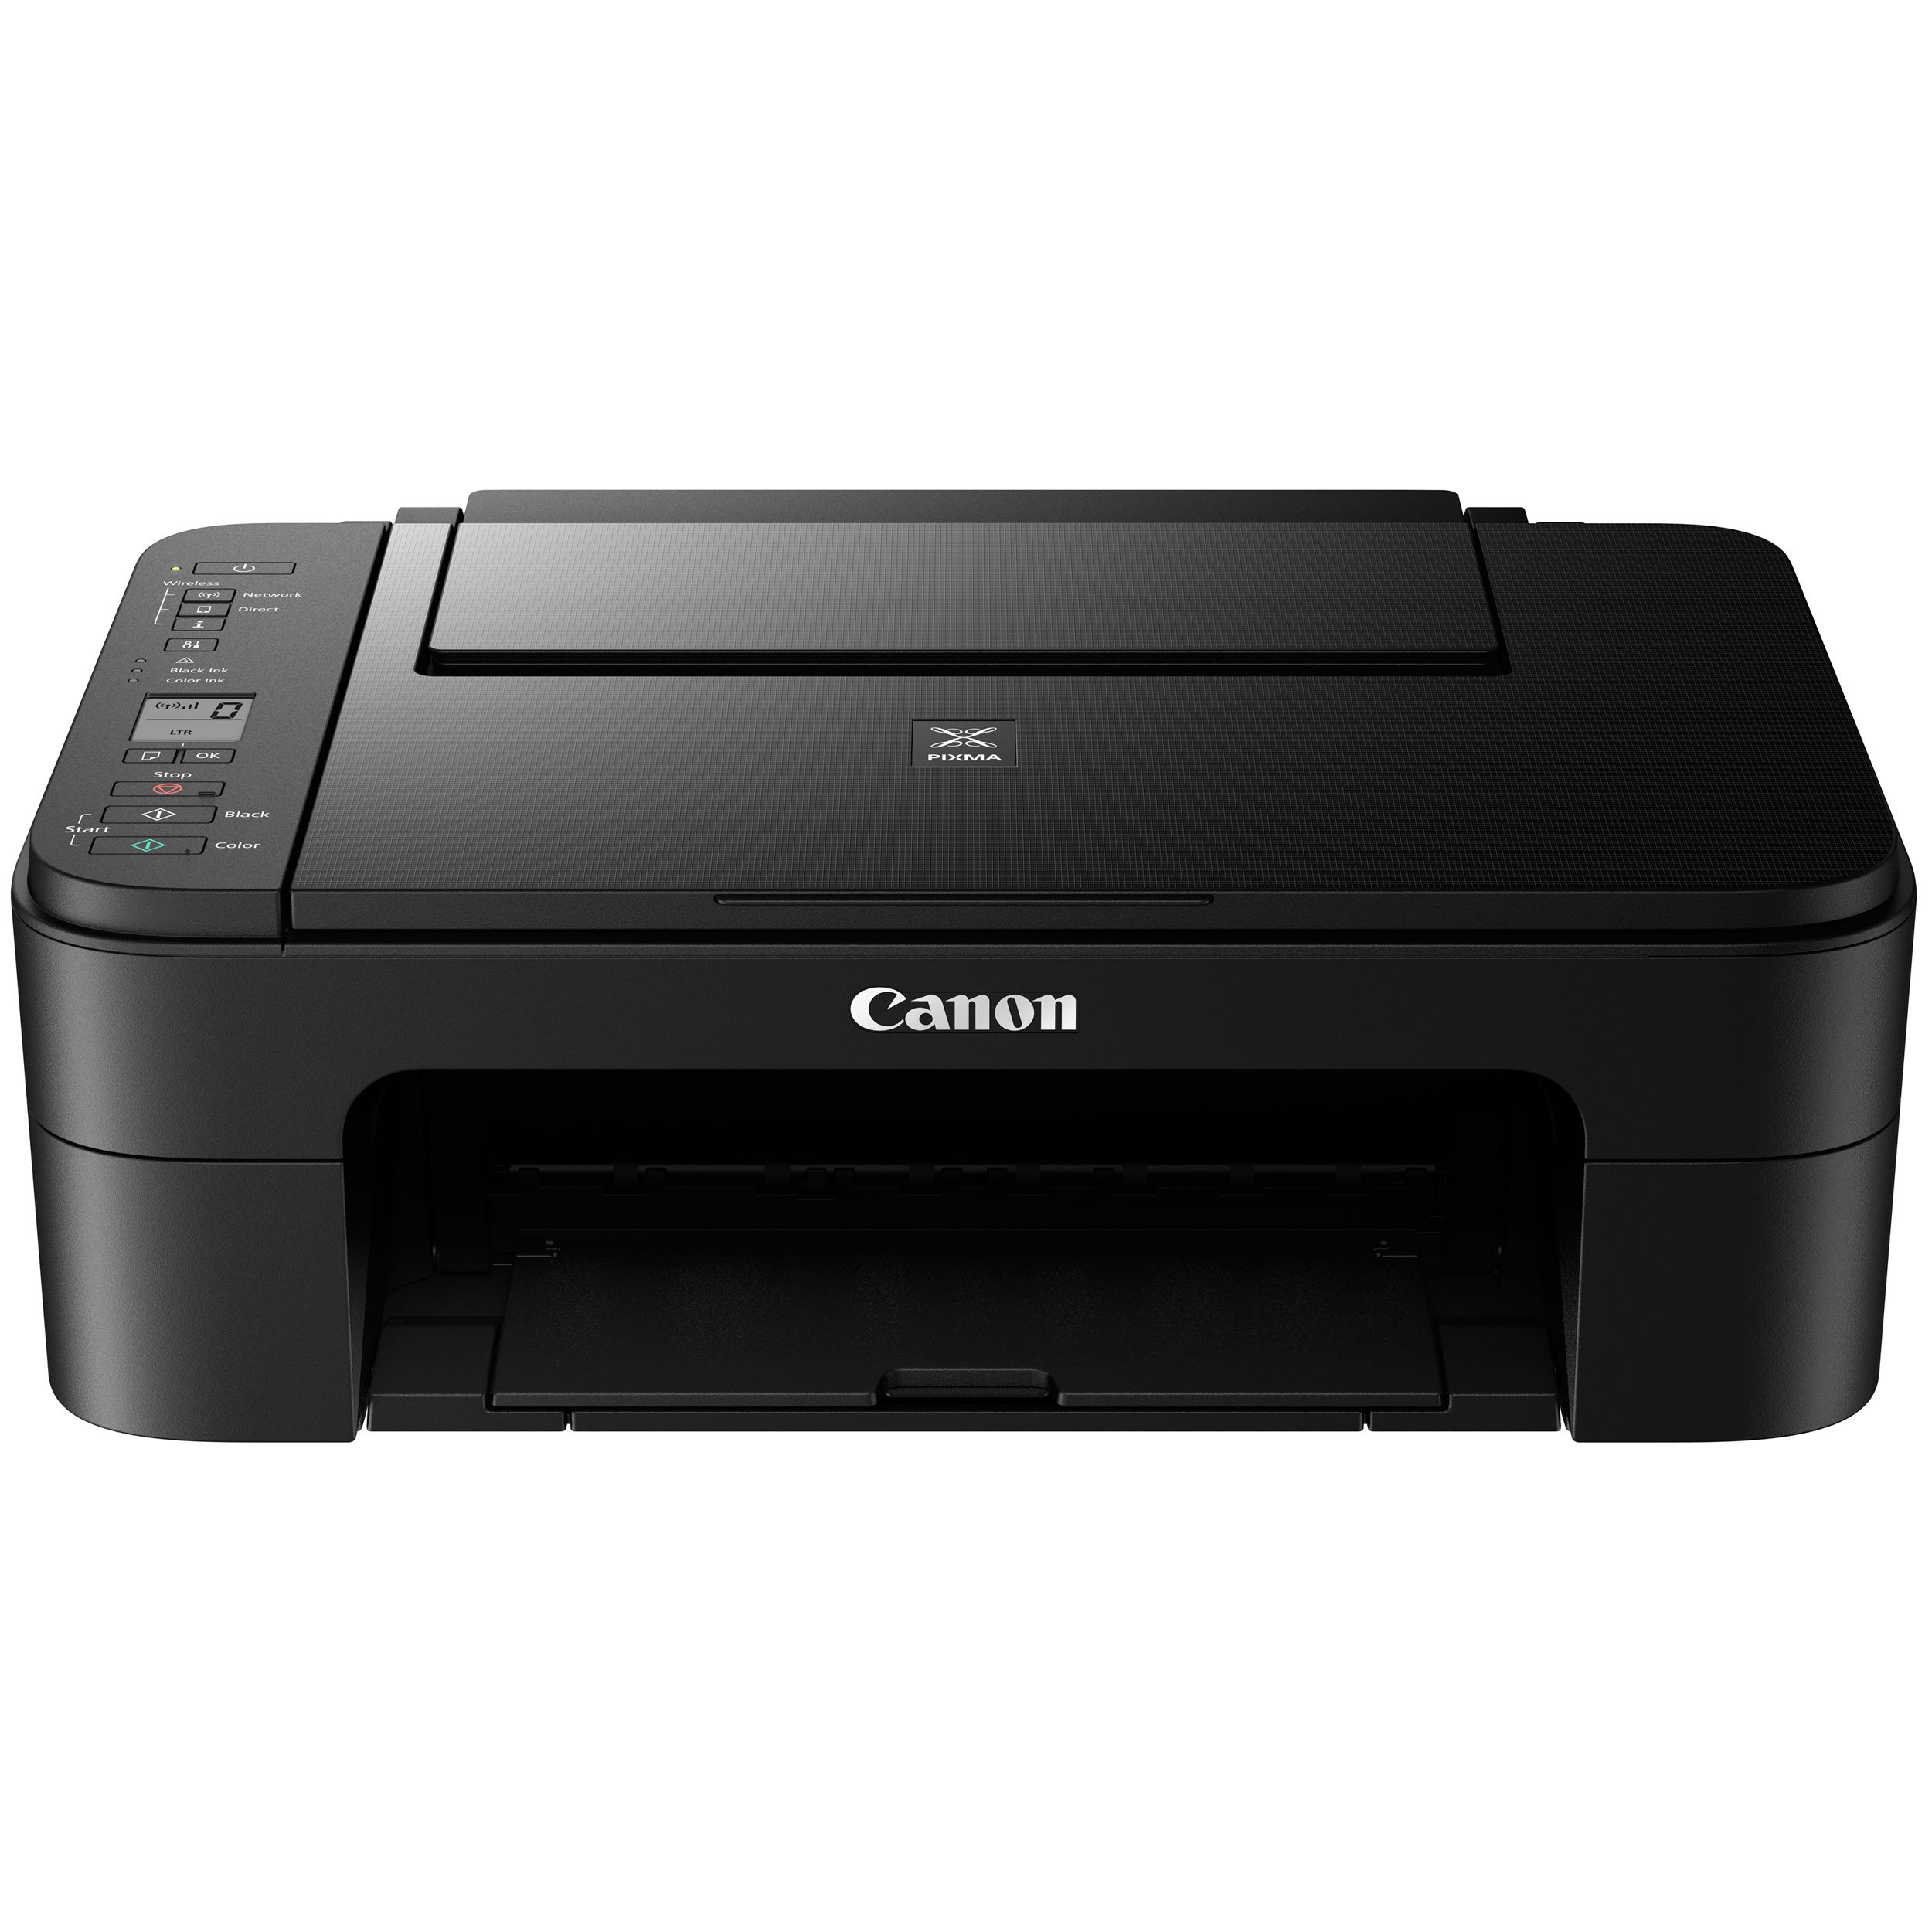 Canon TS3120 Wireless All-In-One Printer, Black by Canon